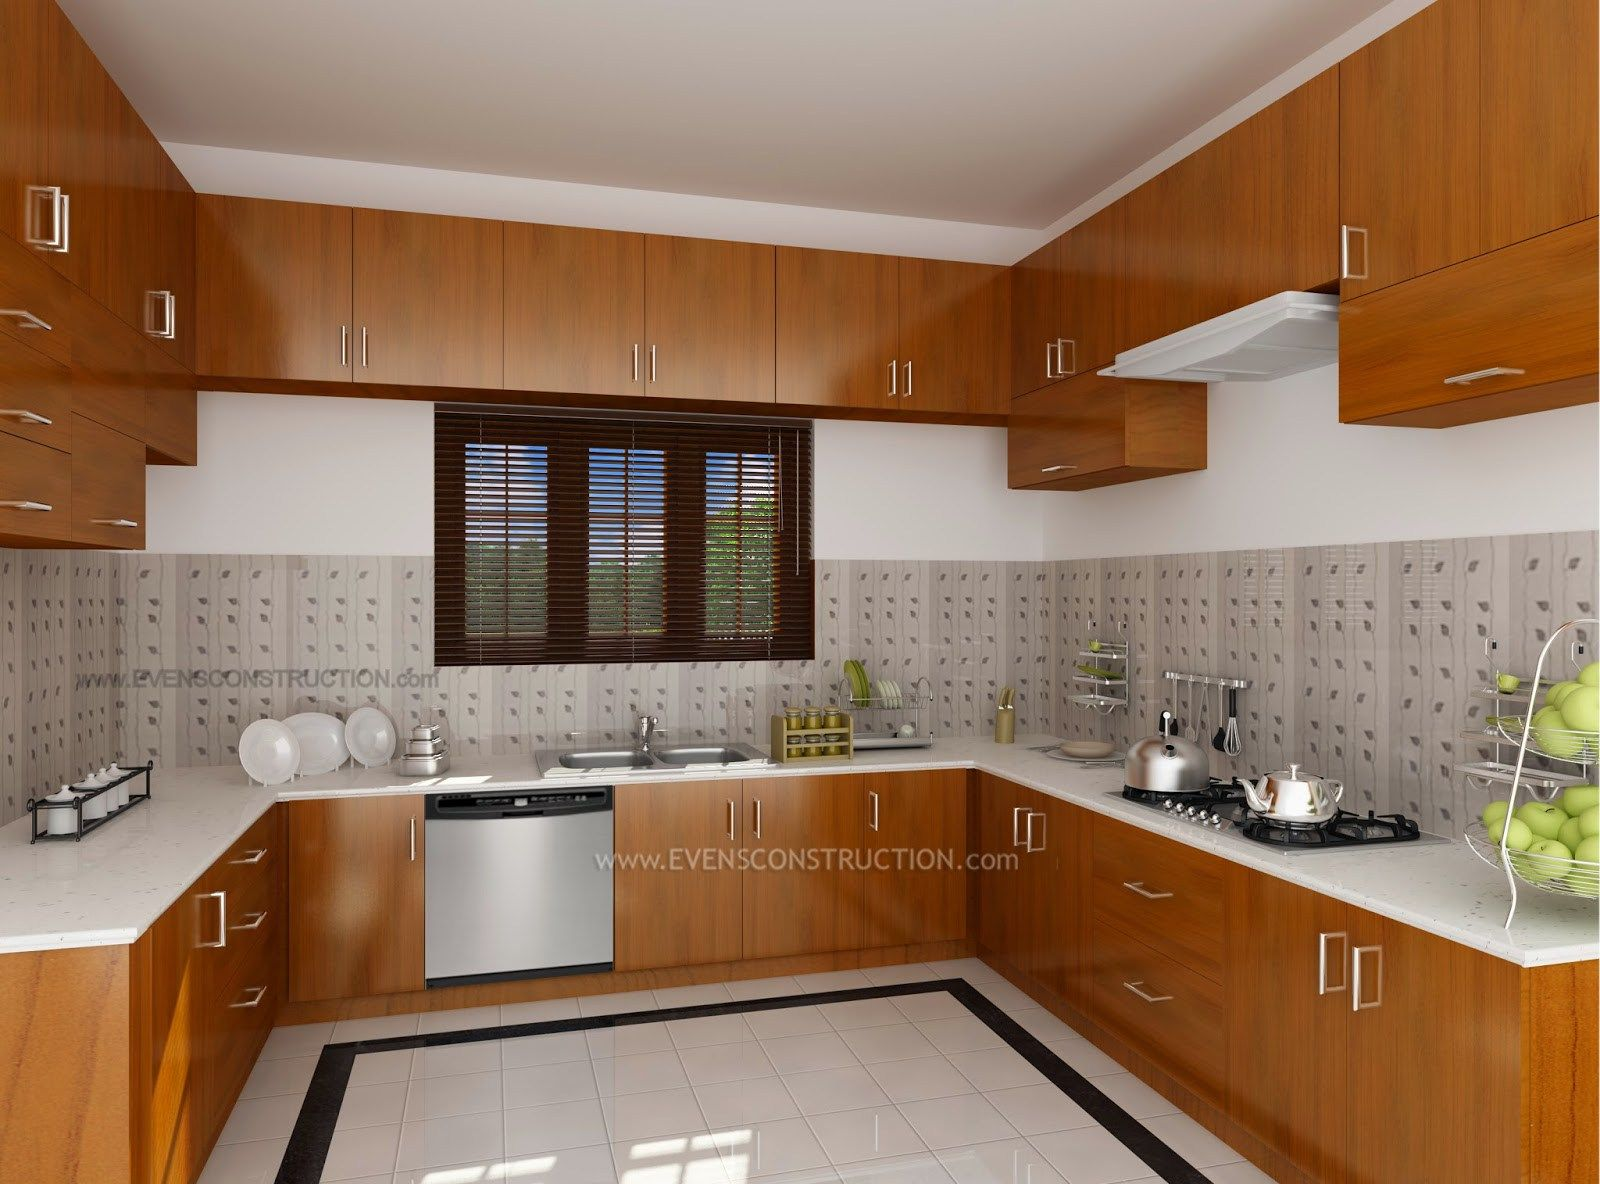 Design interior kitchen home kerala modern house kitchen for House interior design photos